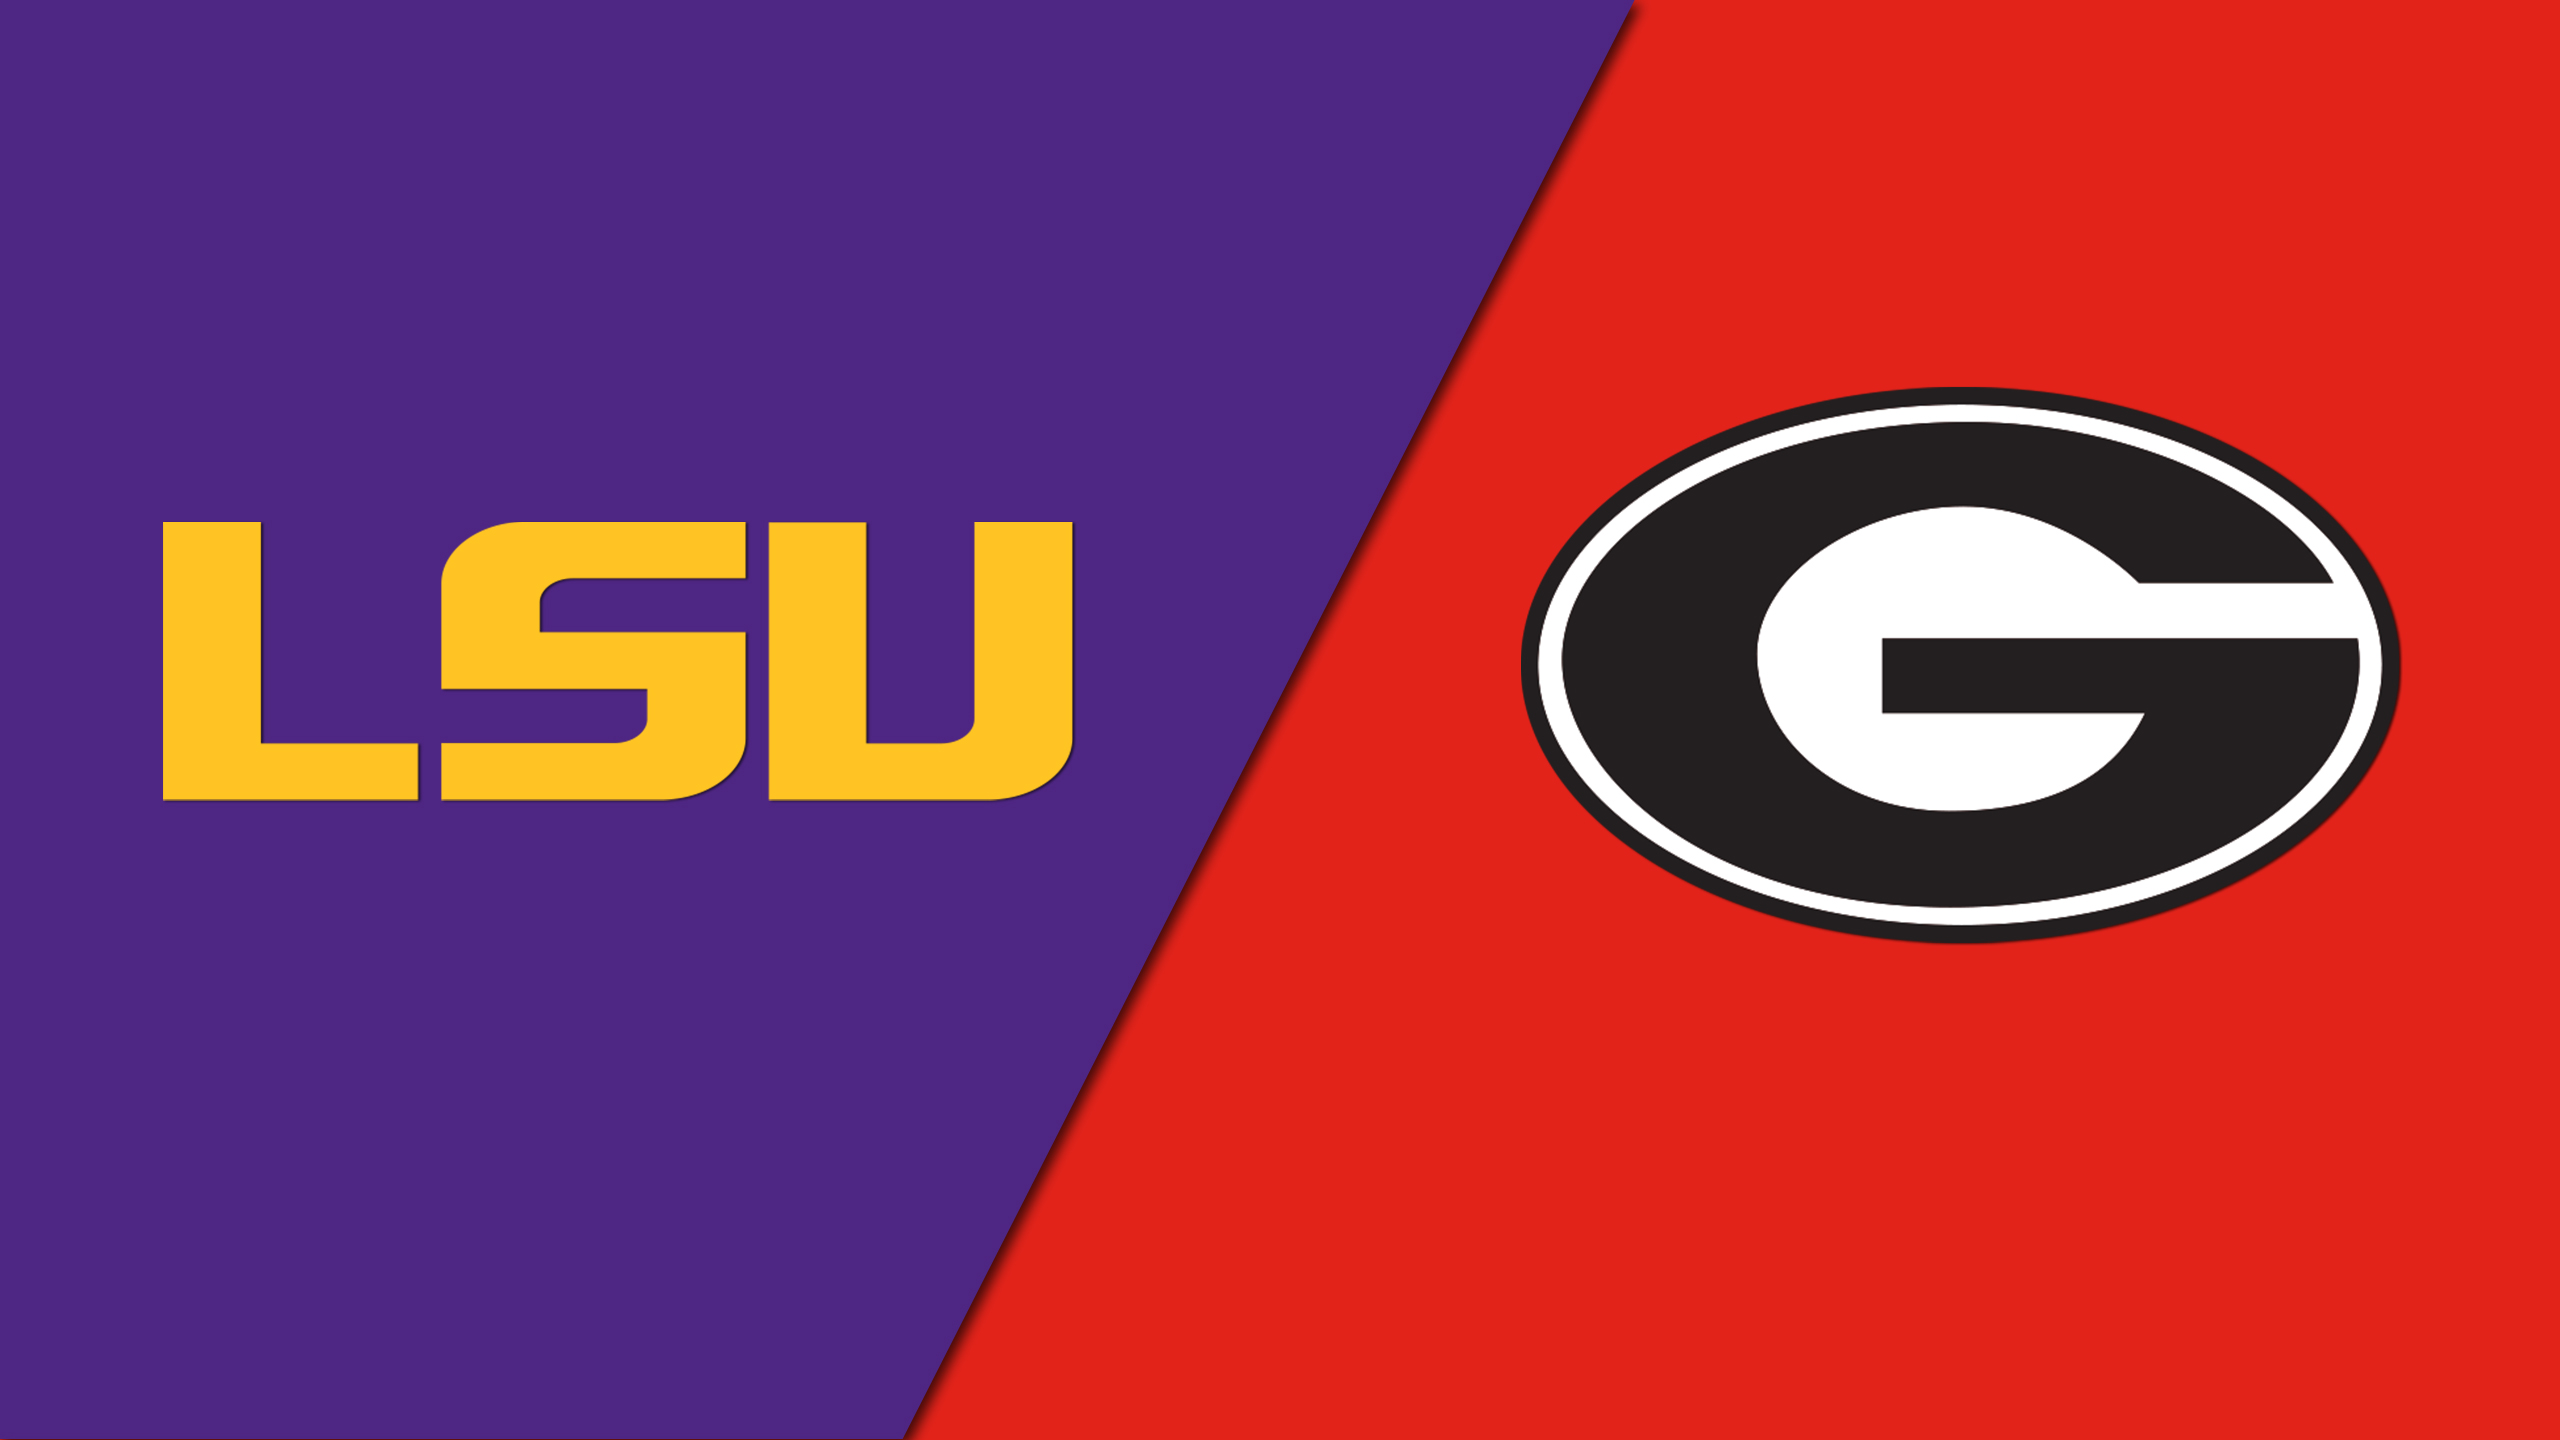 #11 LSU vs. #8 Georgia (Baseball)